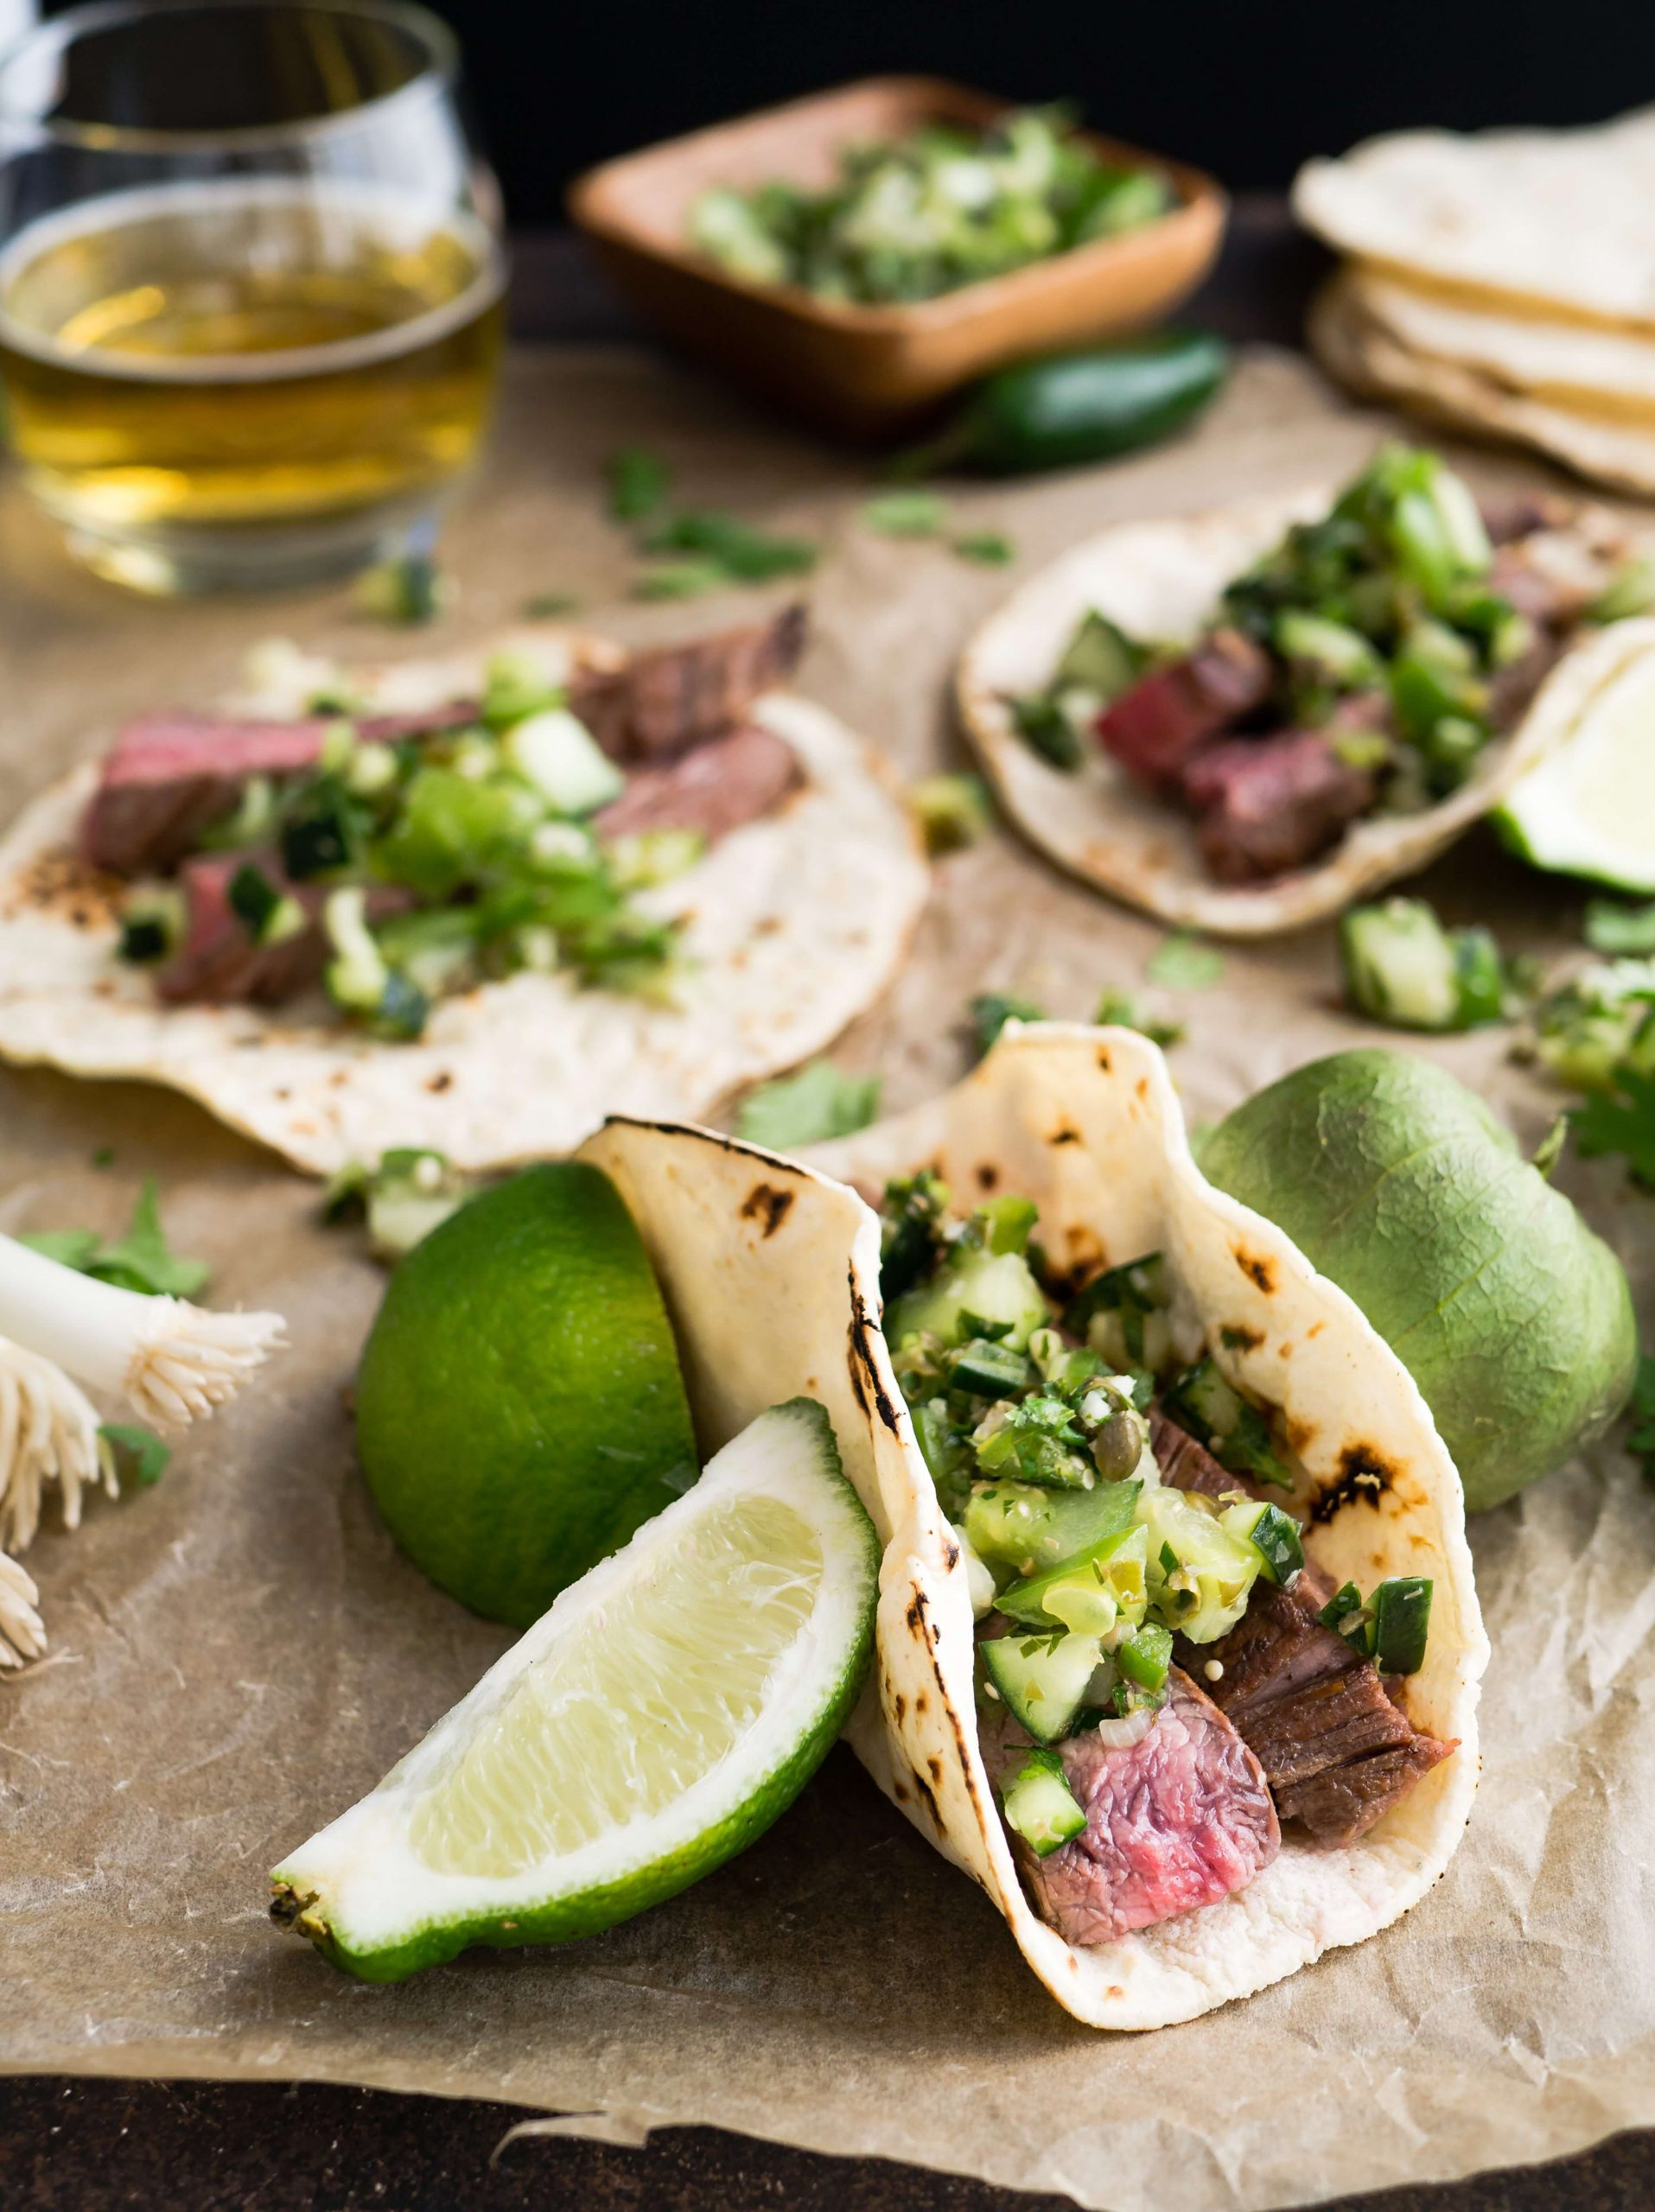 tacos being made, surrounded by lime slices